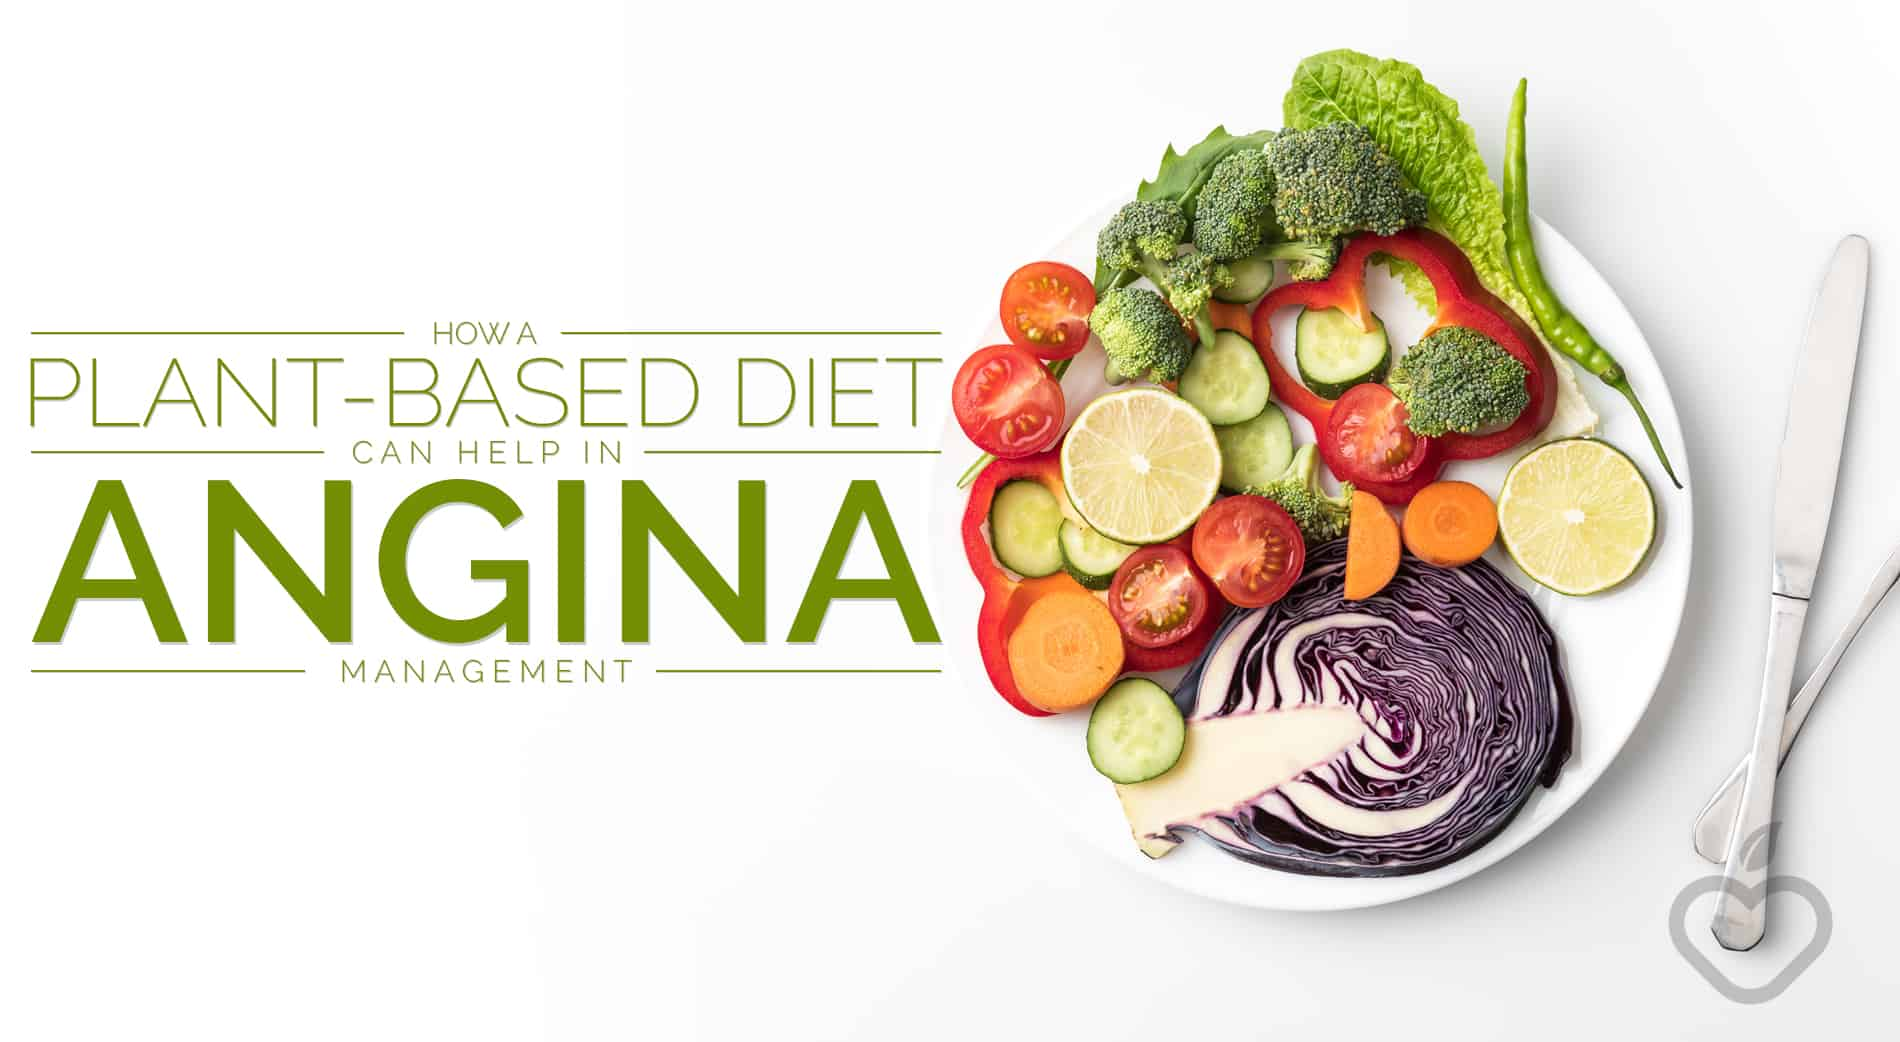 Angina Mangement Image Design 1 - How a Plant-Based Diet Can Help Angina Management